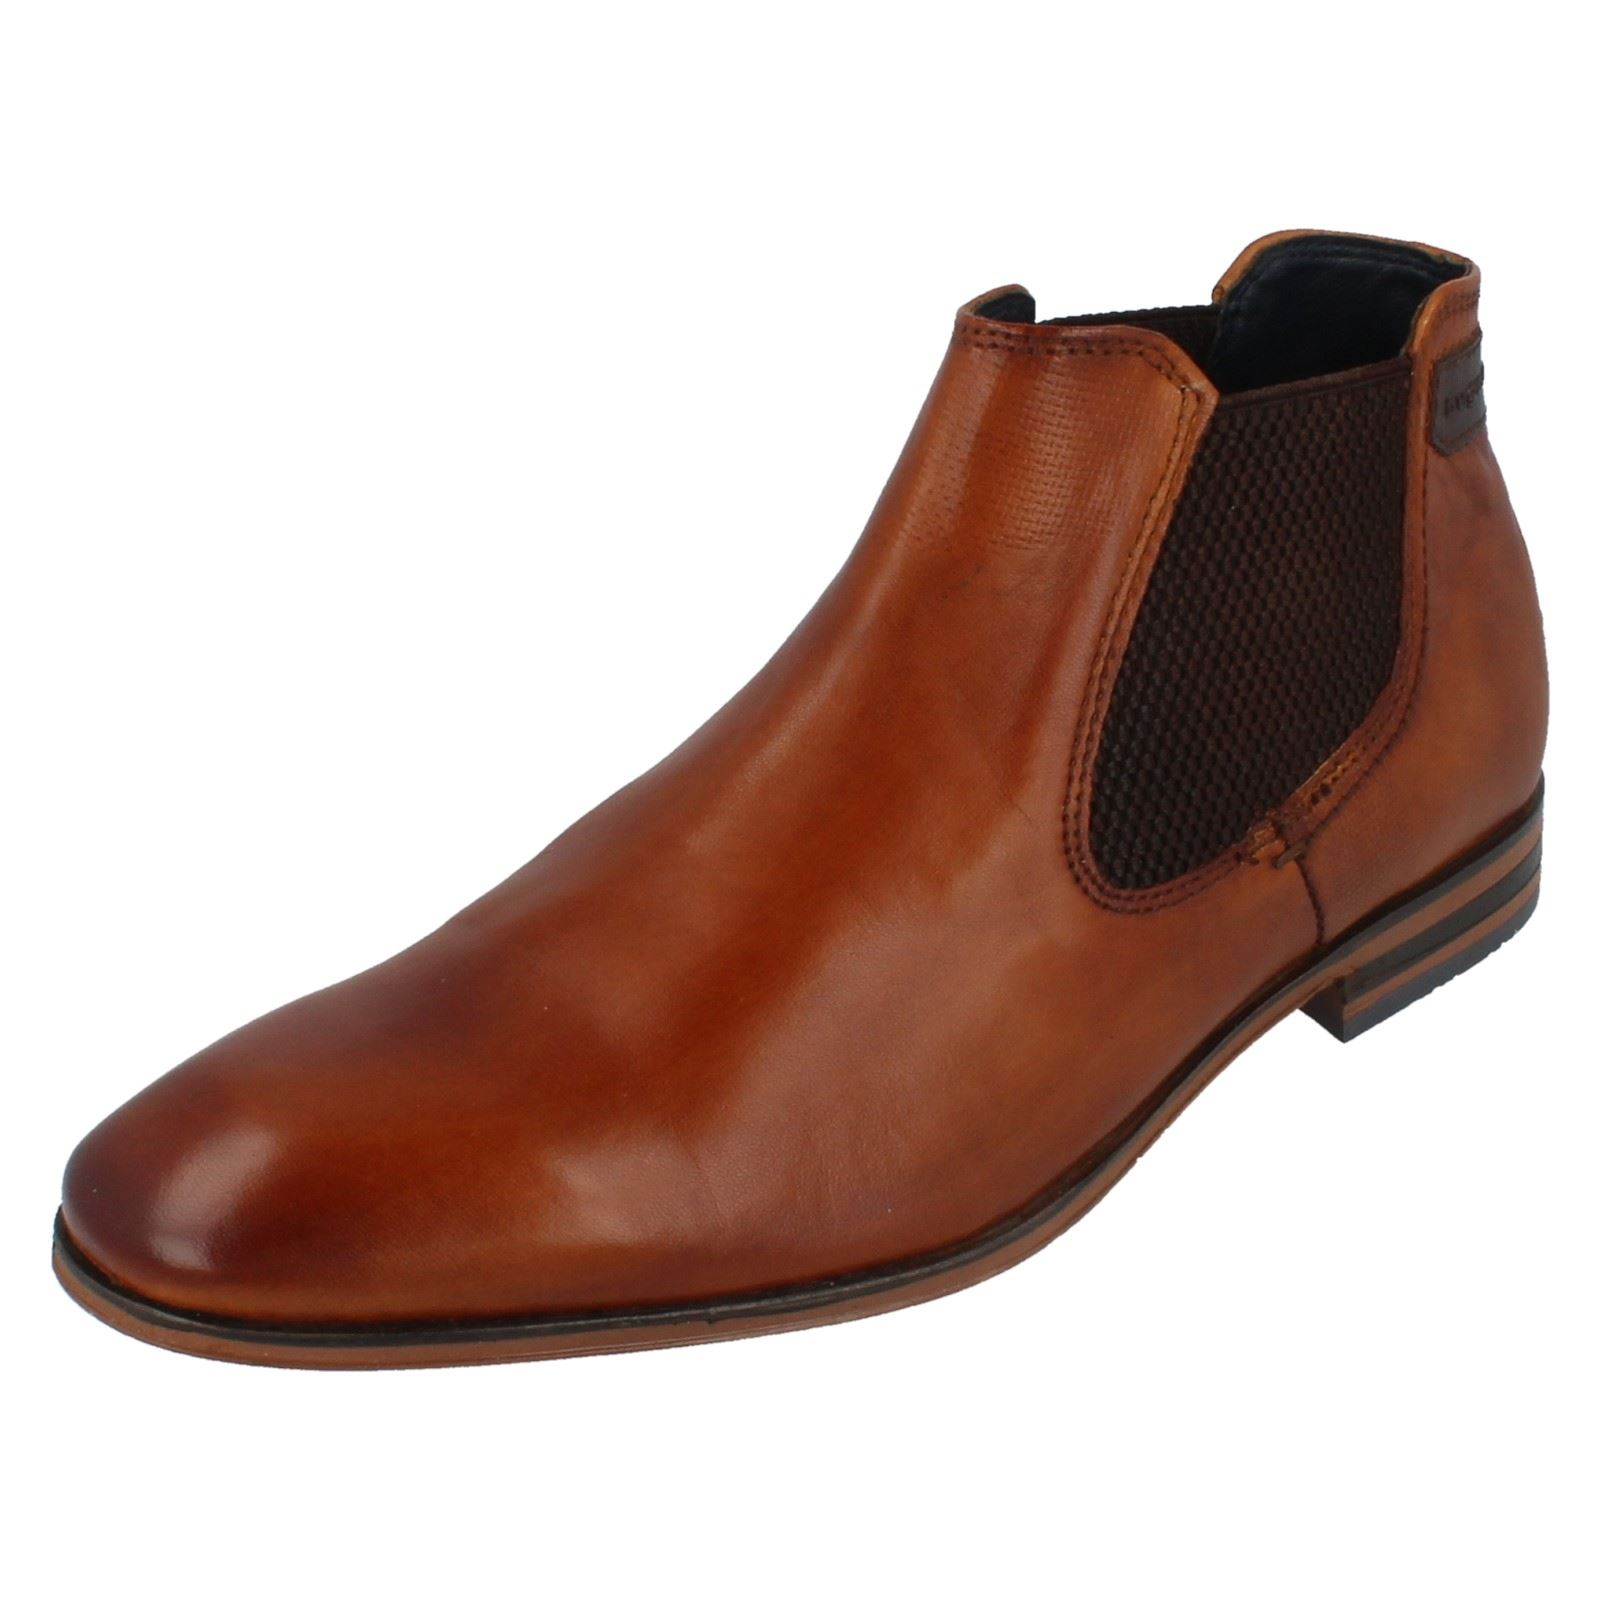 huge selection of b264b 0bcef Mens Formal Ankle 6300 10120 The 4100 ~ Boots N 311 Style Bugatti Leather  brown Cognac 11qwpr5